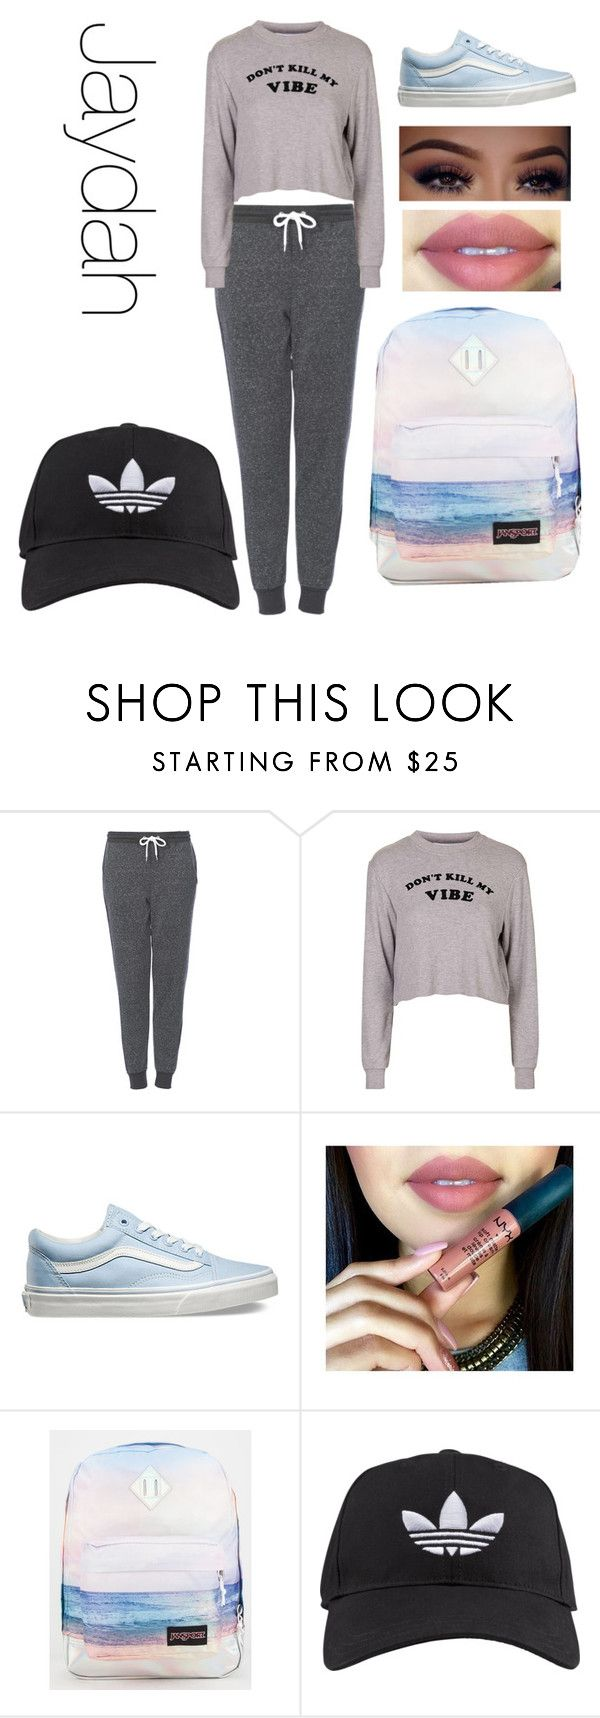 """story for wattpad"" by lauraederveen on Polyvore featuring Topshop, Vans, JanSport, adidas, women's clothing, women, female, woman, misses and juniors"